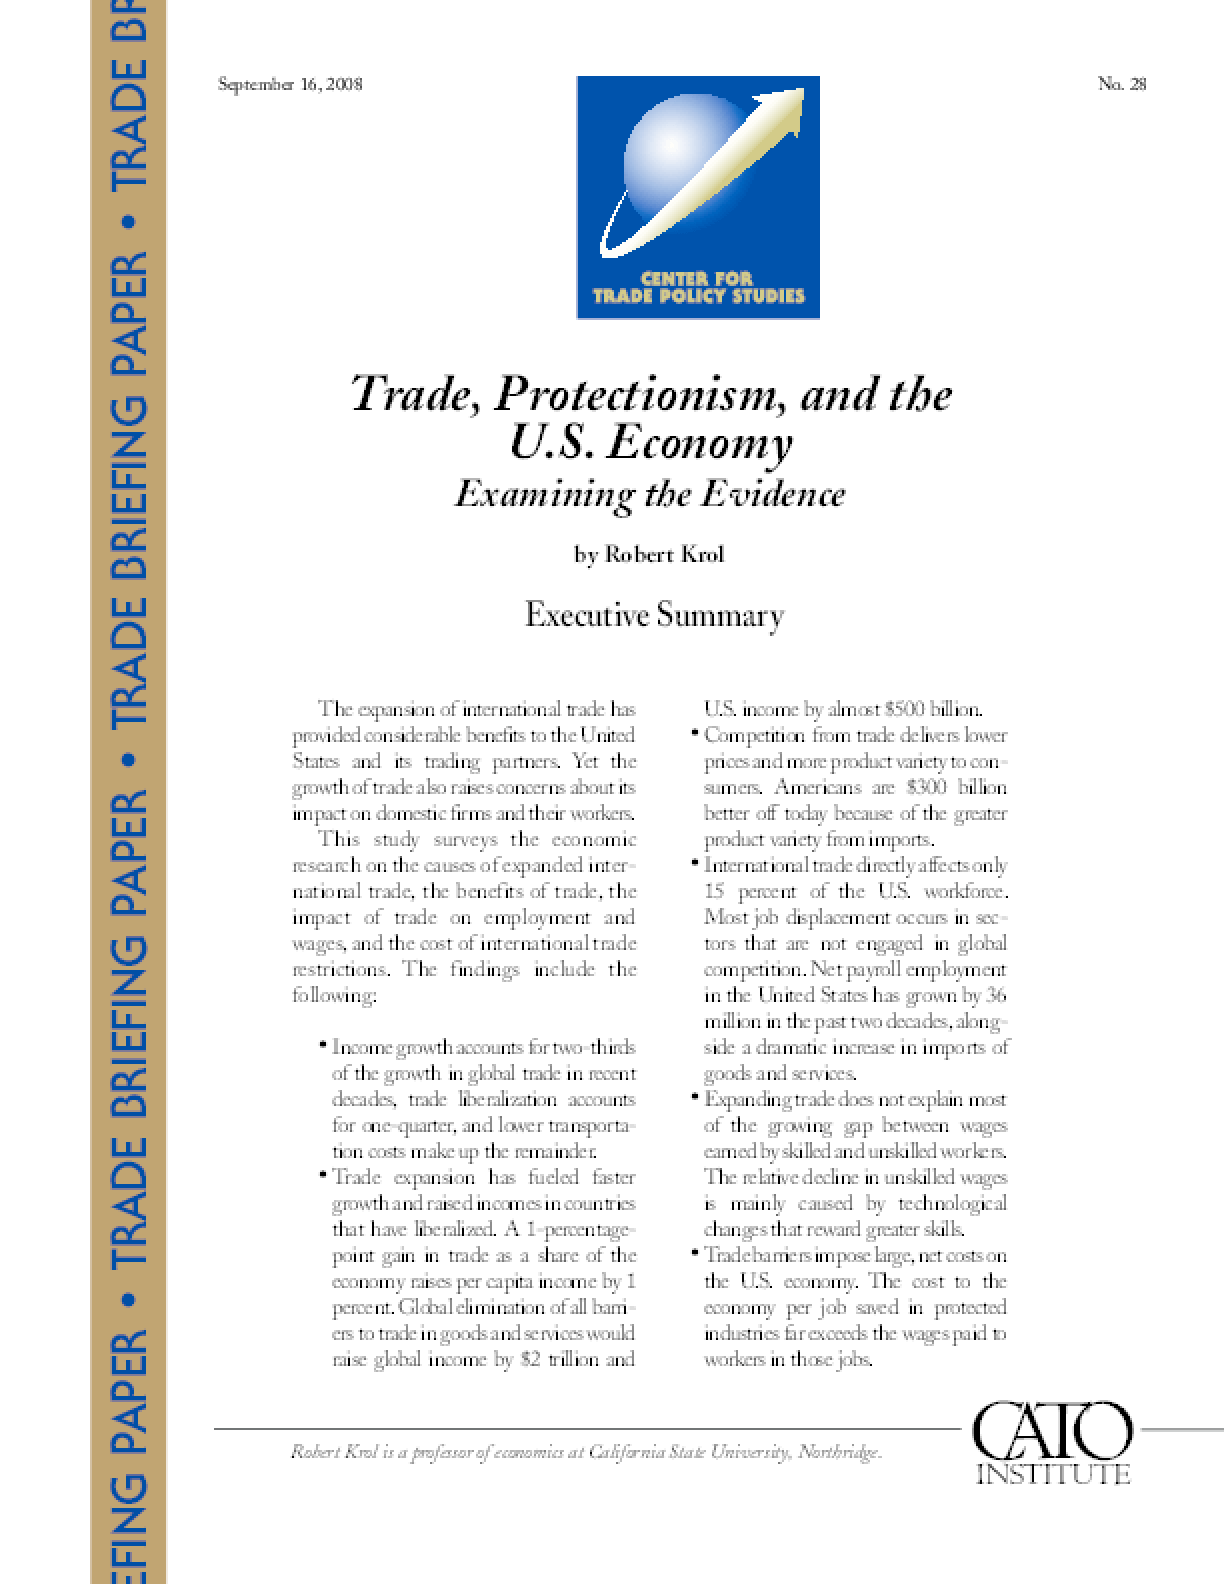 Trade, Protectionism, and the U.S. Economy: Examining the Evidence